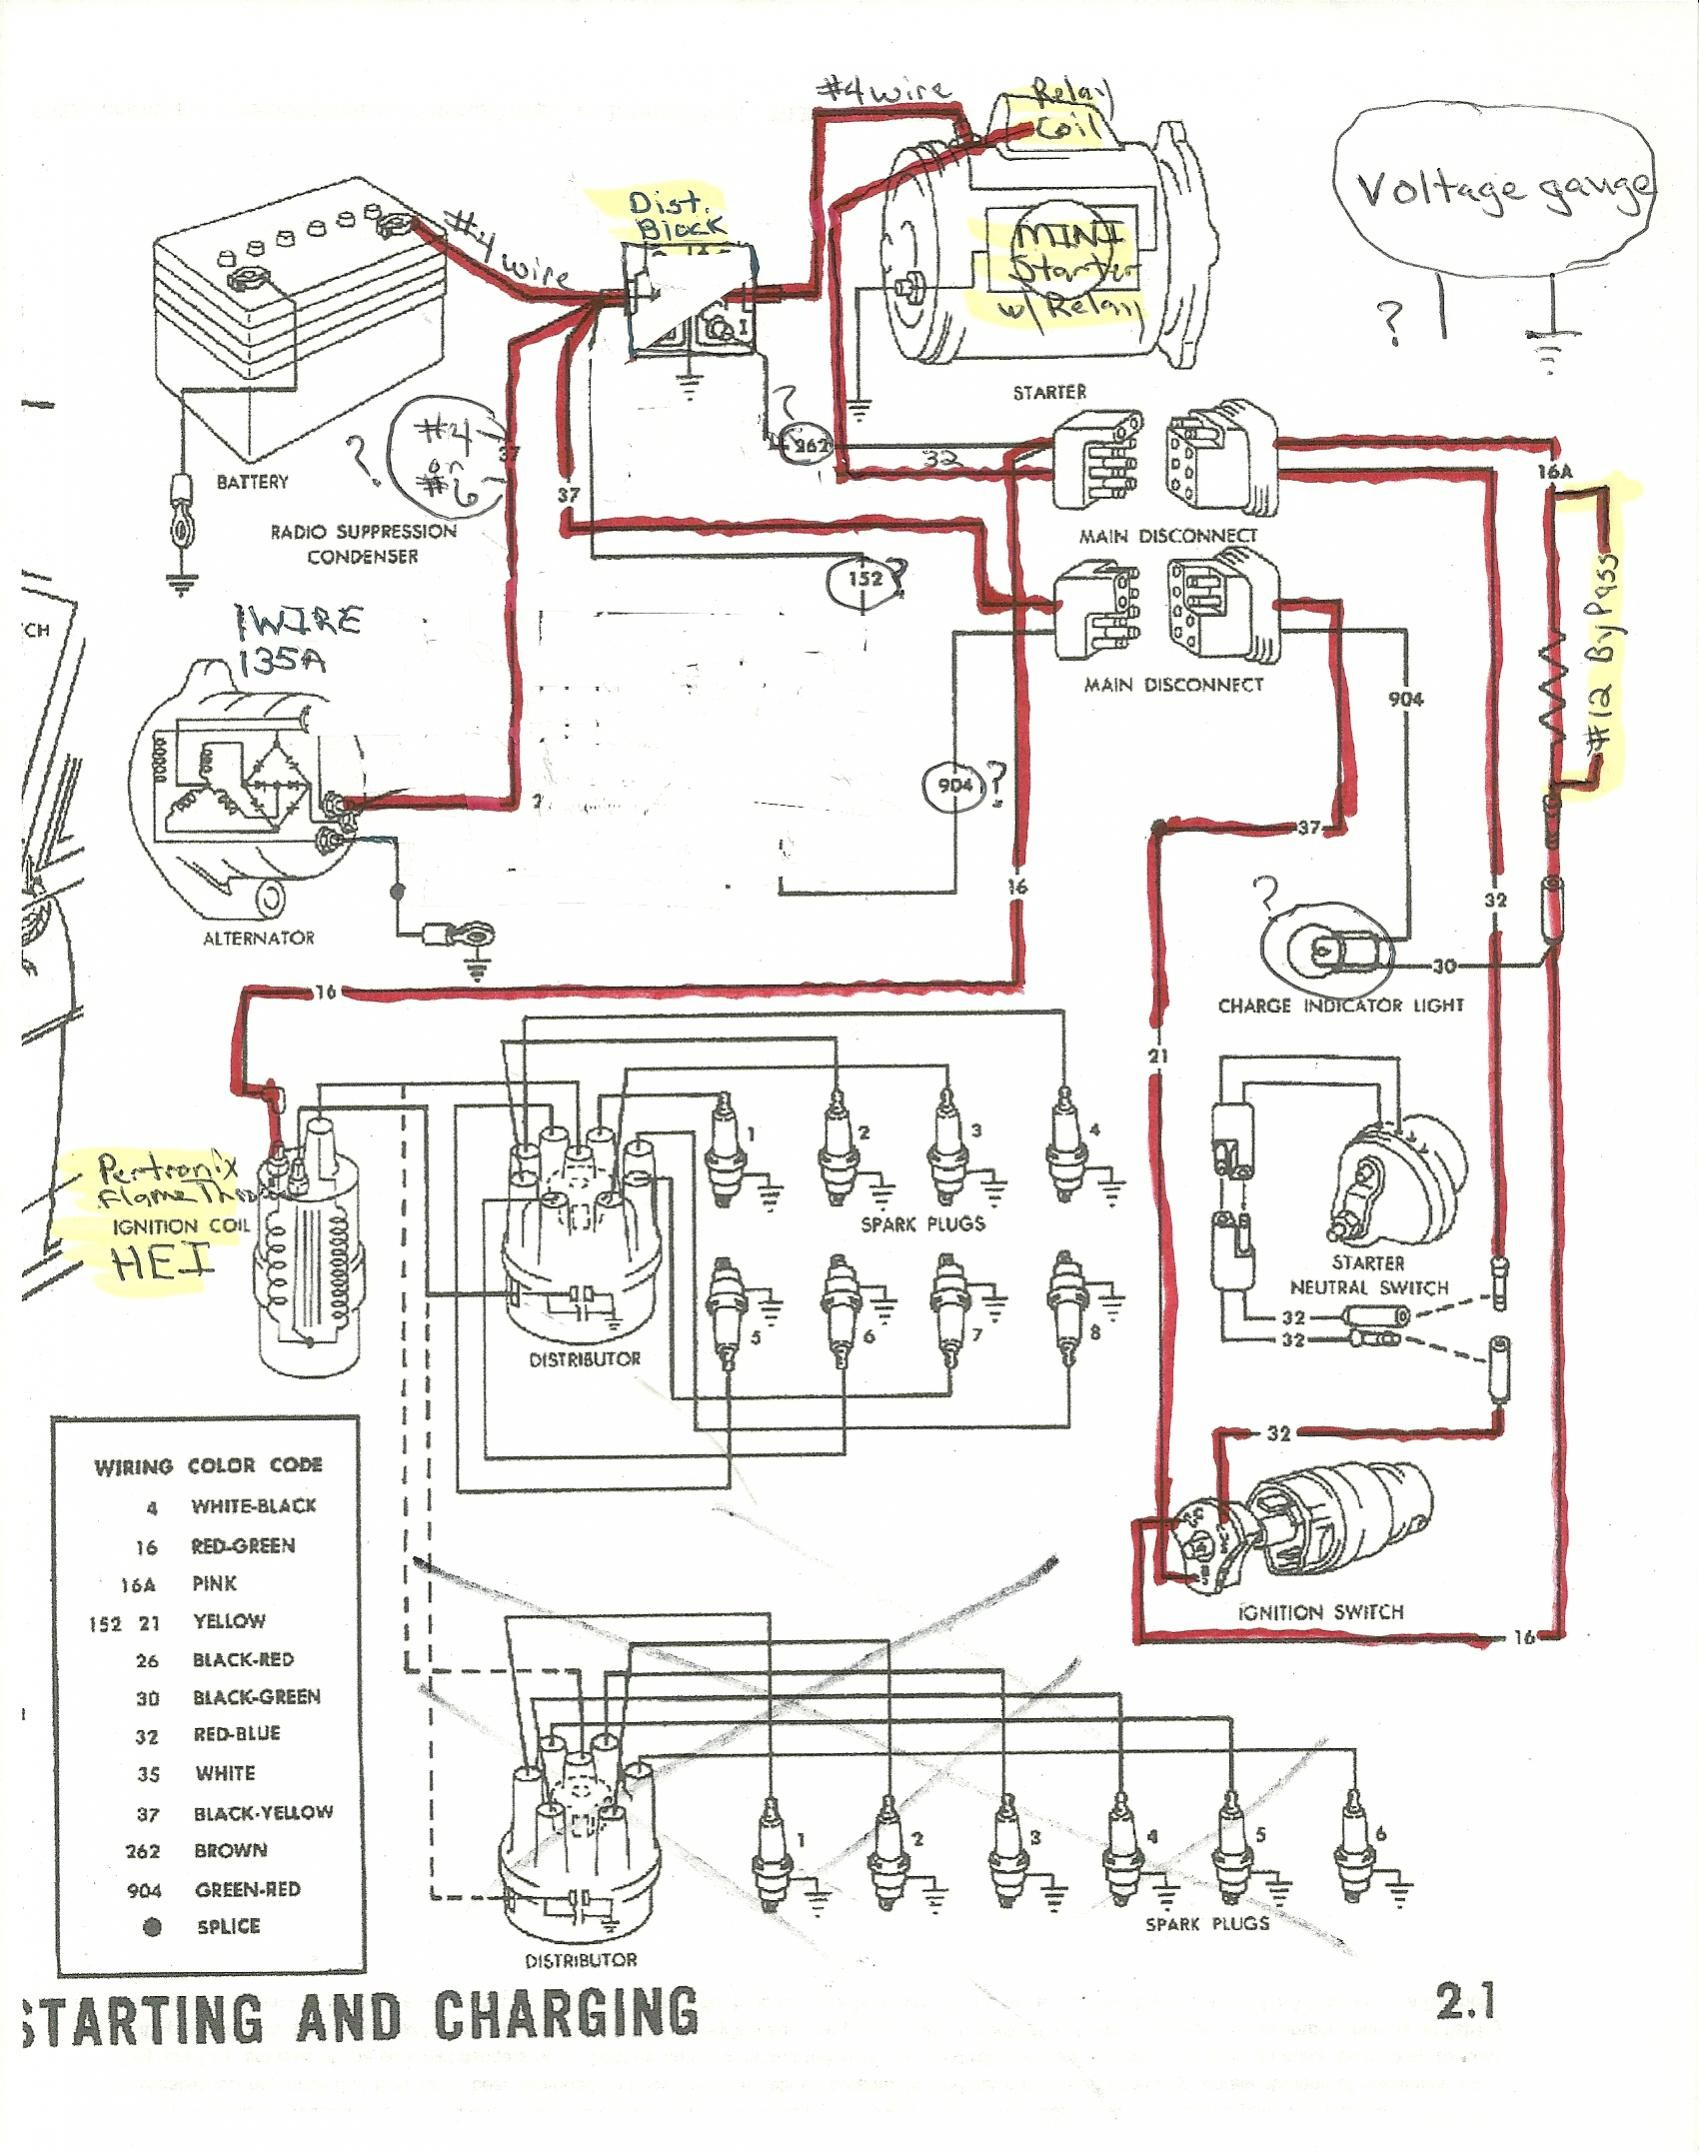 1983 ford mustang alternator wiring diagram free picture rh prowiringdiagram today 1966 Ford Ignition Switch Wiring Diagram Ford 3G Alternator Wiring Diagram